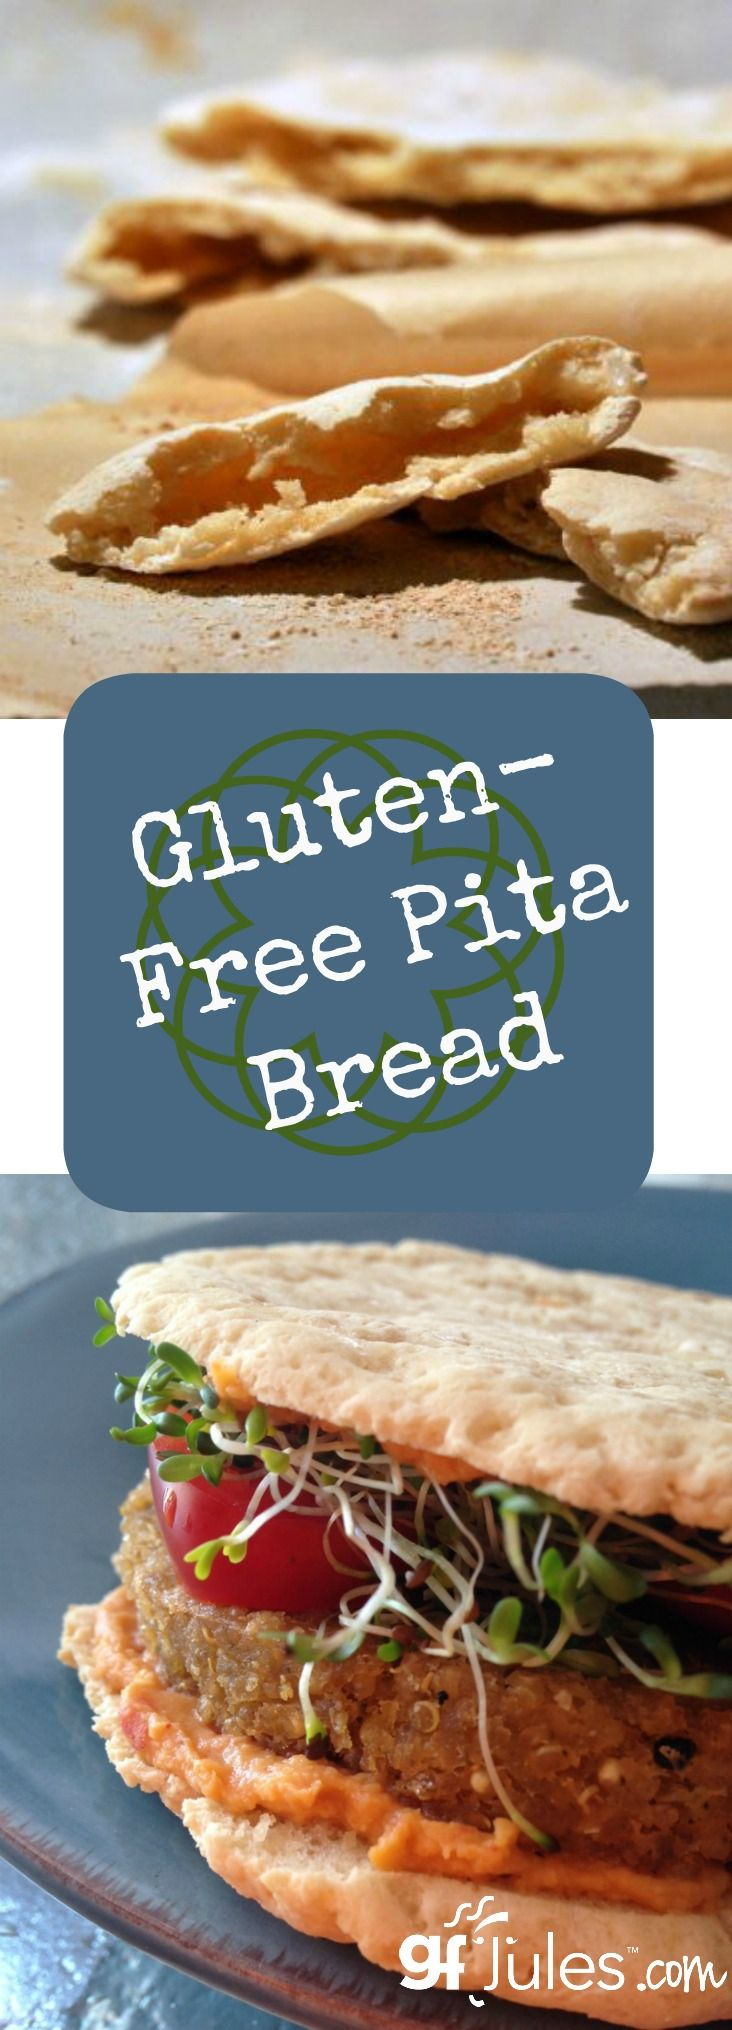 Gluten free pita bread, flatbread for pizza or naan! Versatile, easy, yeast-free and vegan gluten-free bread |gfJules